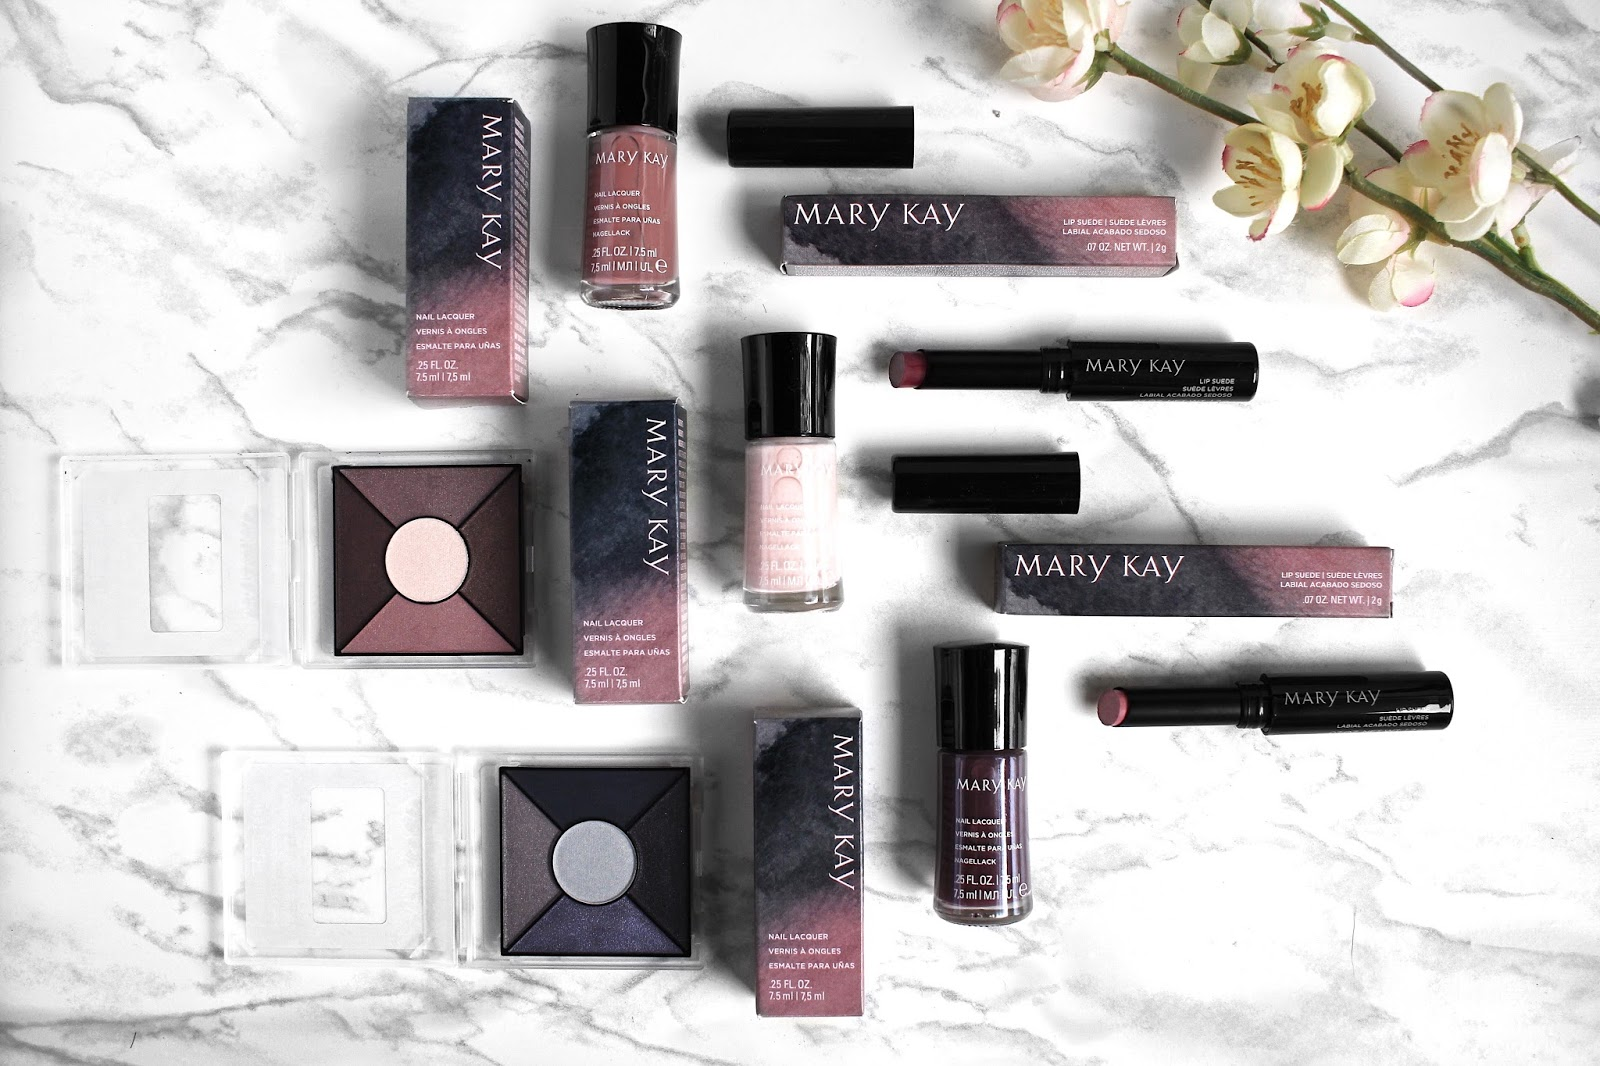 Mary Kay's Fall Colour Collection - The Glam Surge